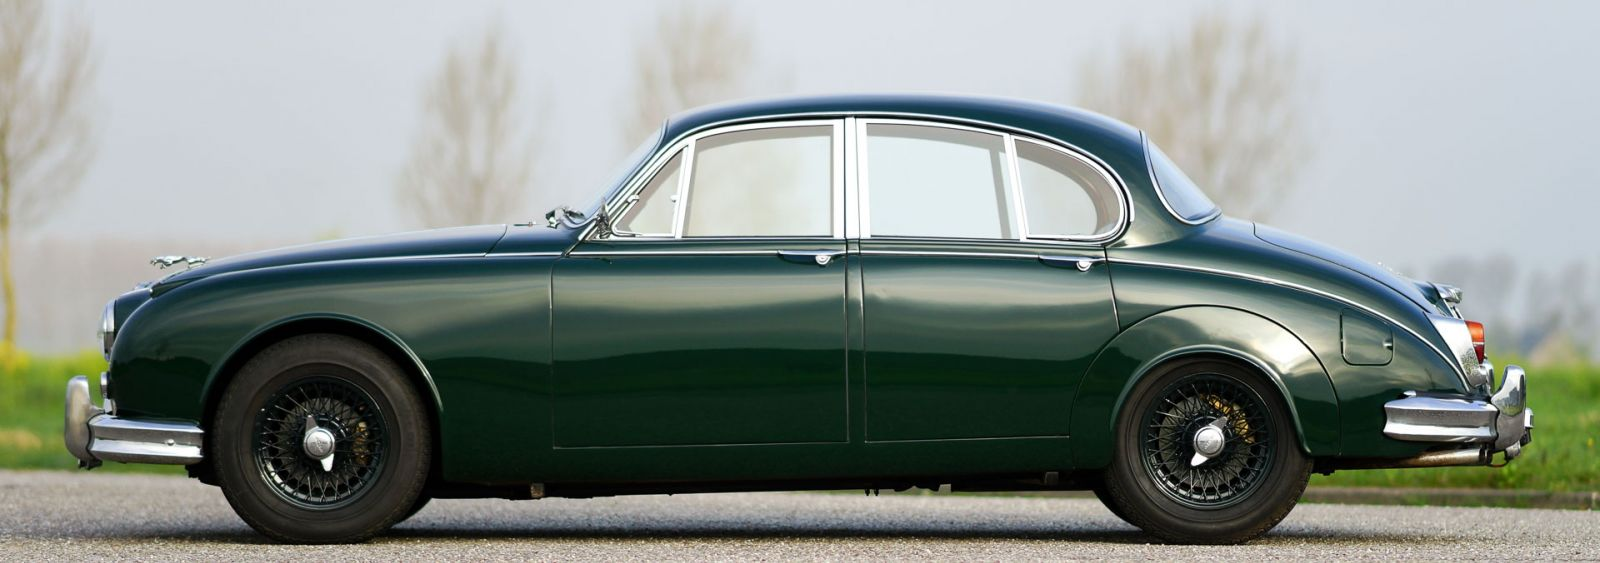 Jaguar Mk II 3.8 Litre, 1961 - Welcome to ClassiCarGarage